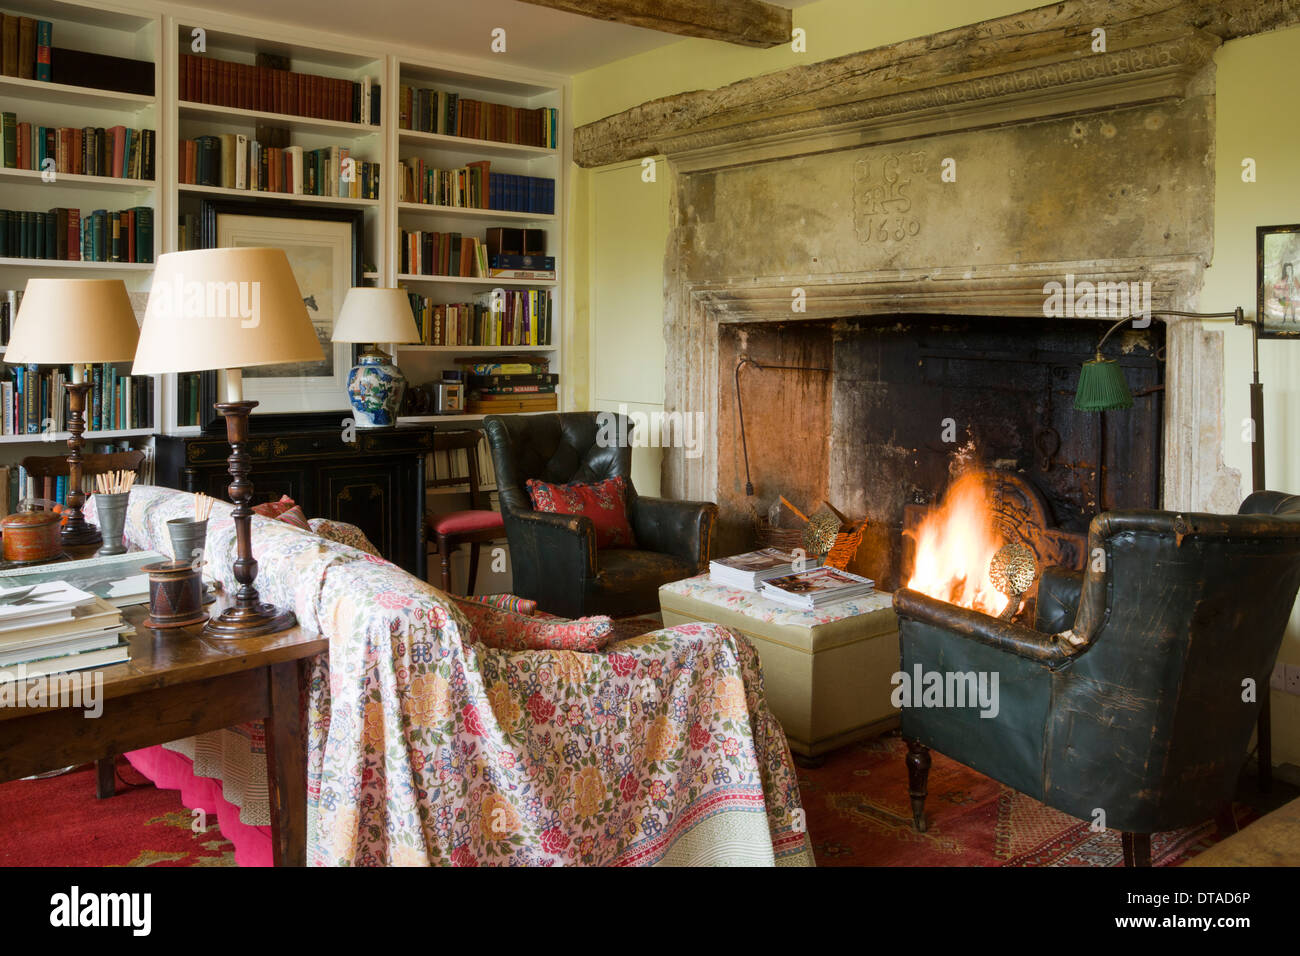 Period house shabby chic sitting room with a large open fireplace. - Stock Image